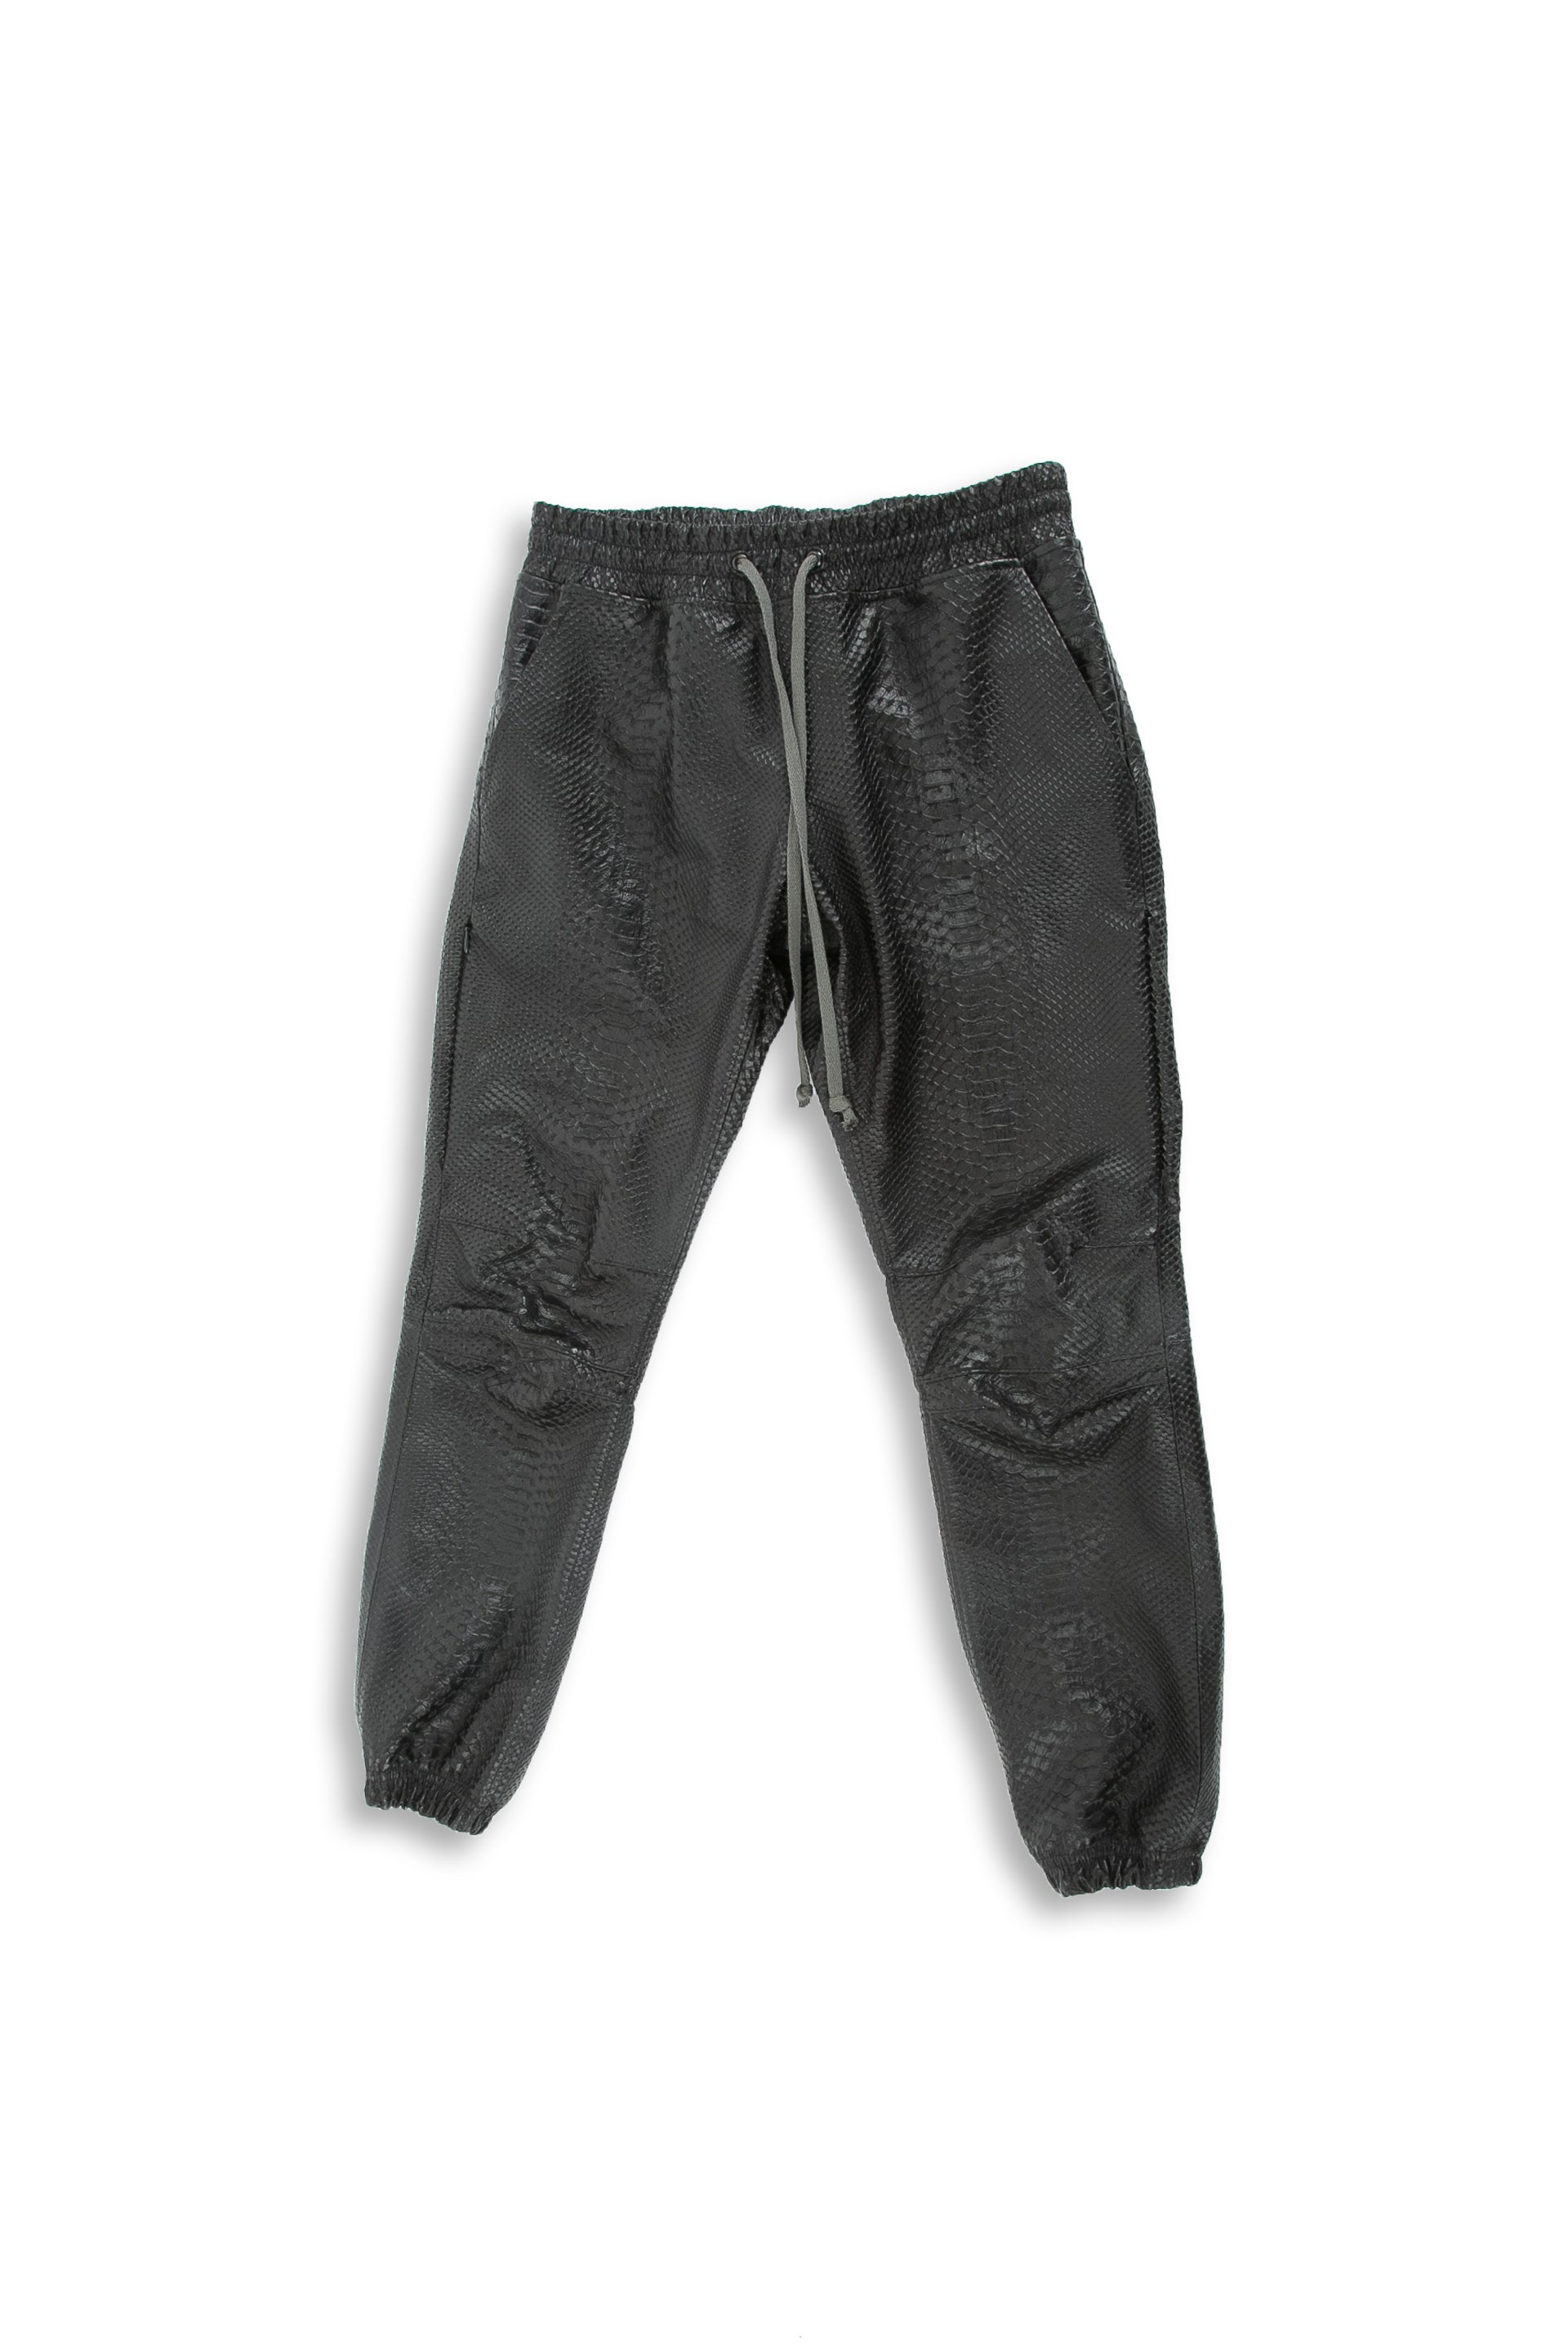 Snakeskin Jogger in Black